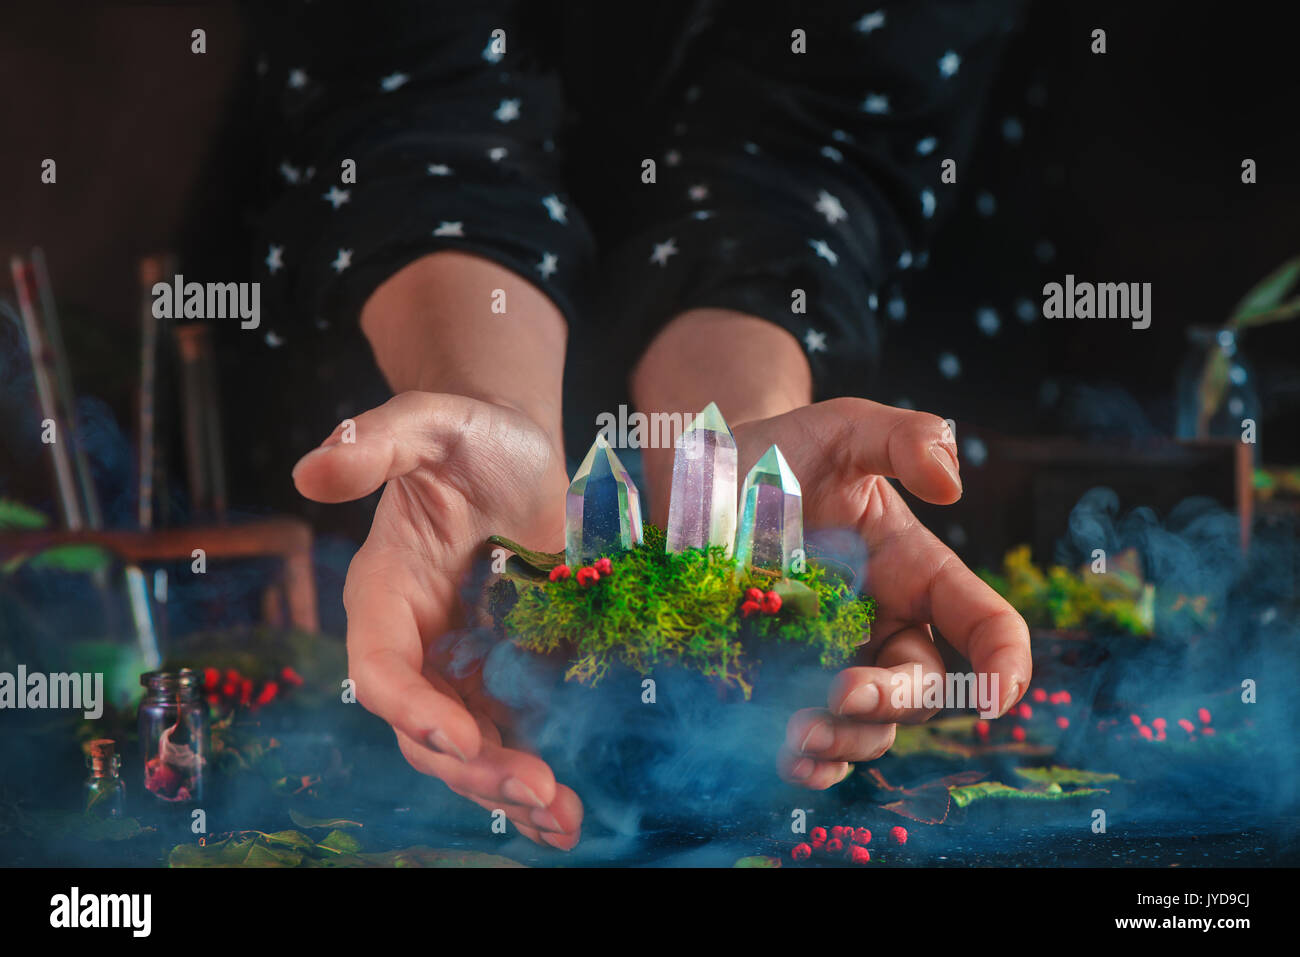 Young witch holding a floating turf with moss and crystals. Mystical scene with smoke and magical supplies. Star pattern sleeves of witch clothes. - Stock Image